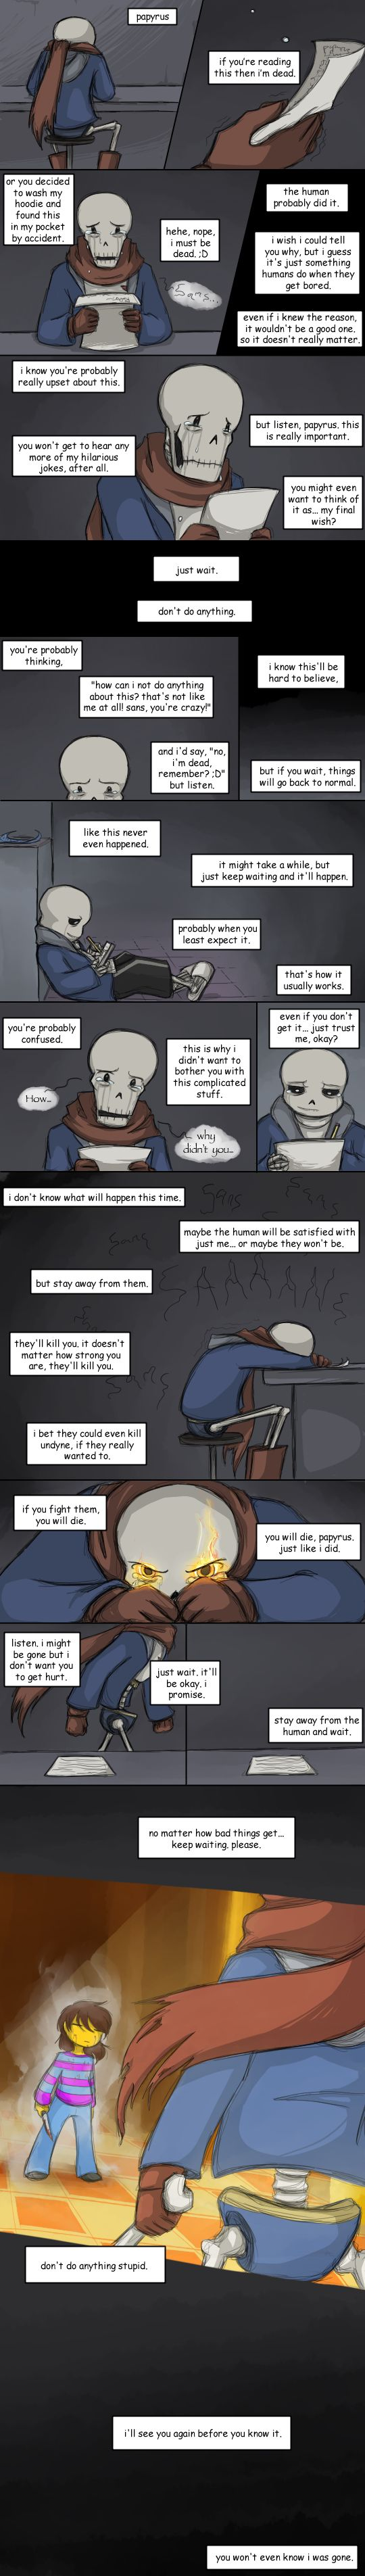 [UNDERTALE SPOILERS] it'll be okay by zarla on DeviantArt